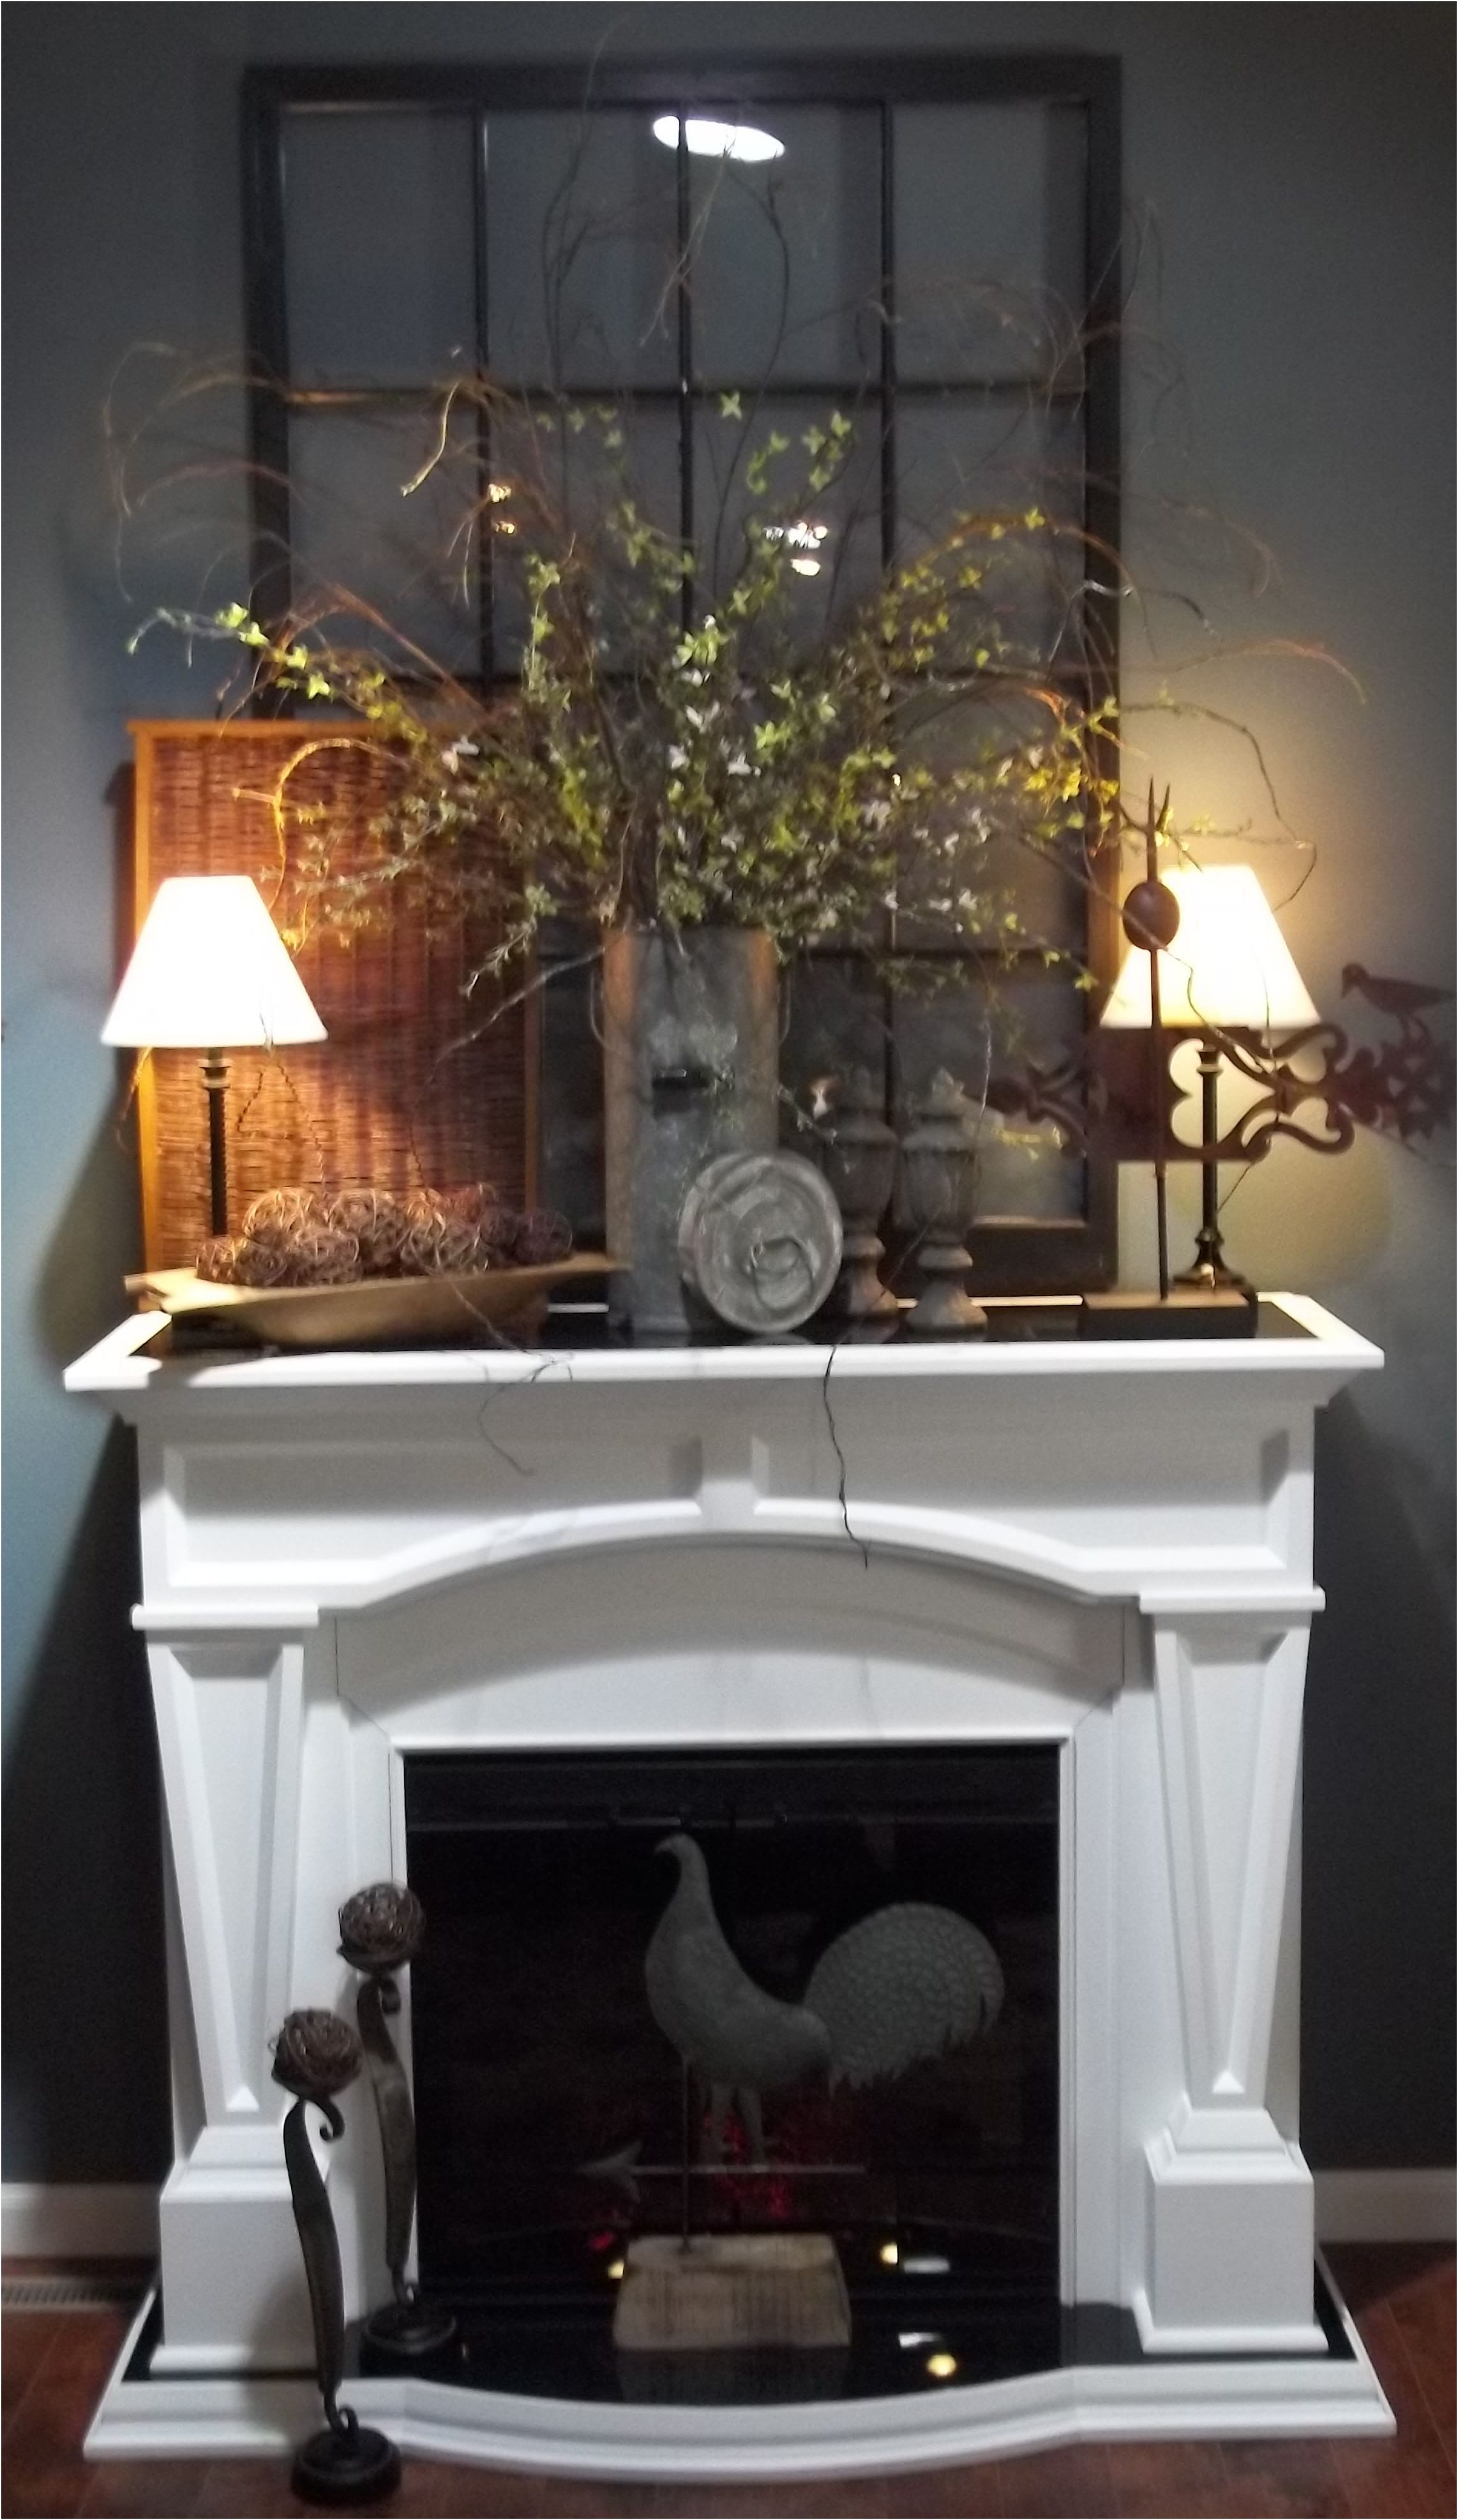 Unique Idea for Fireplace Decoration